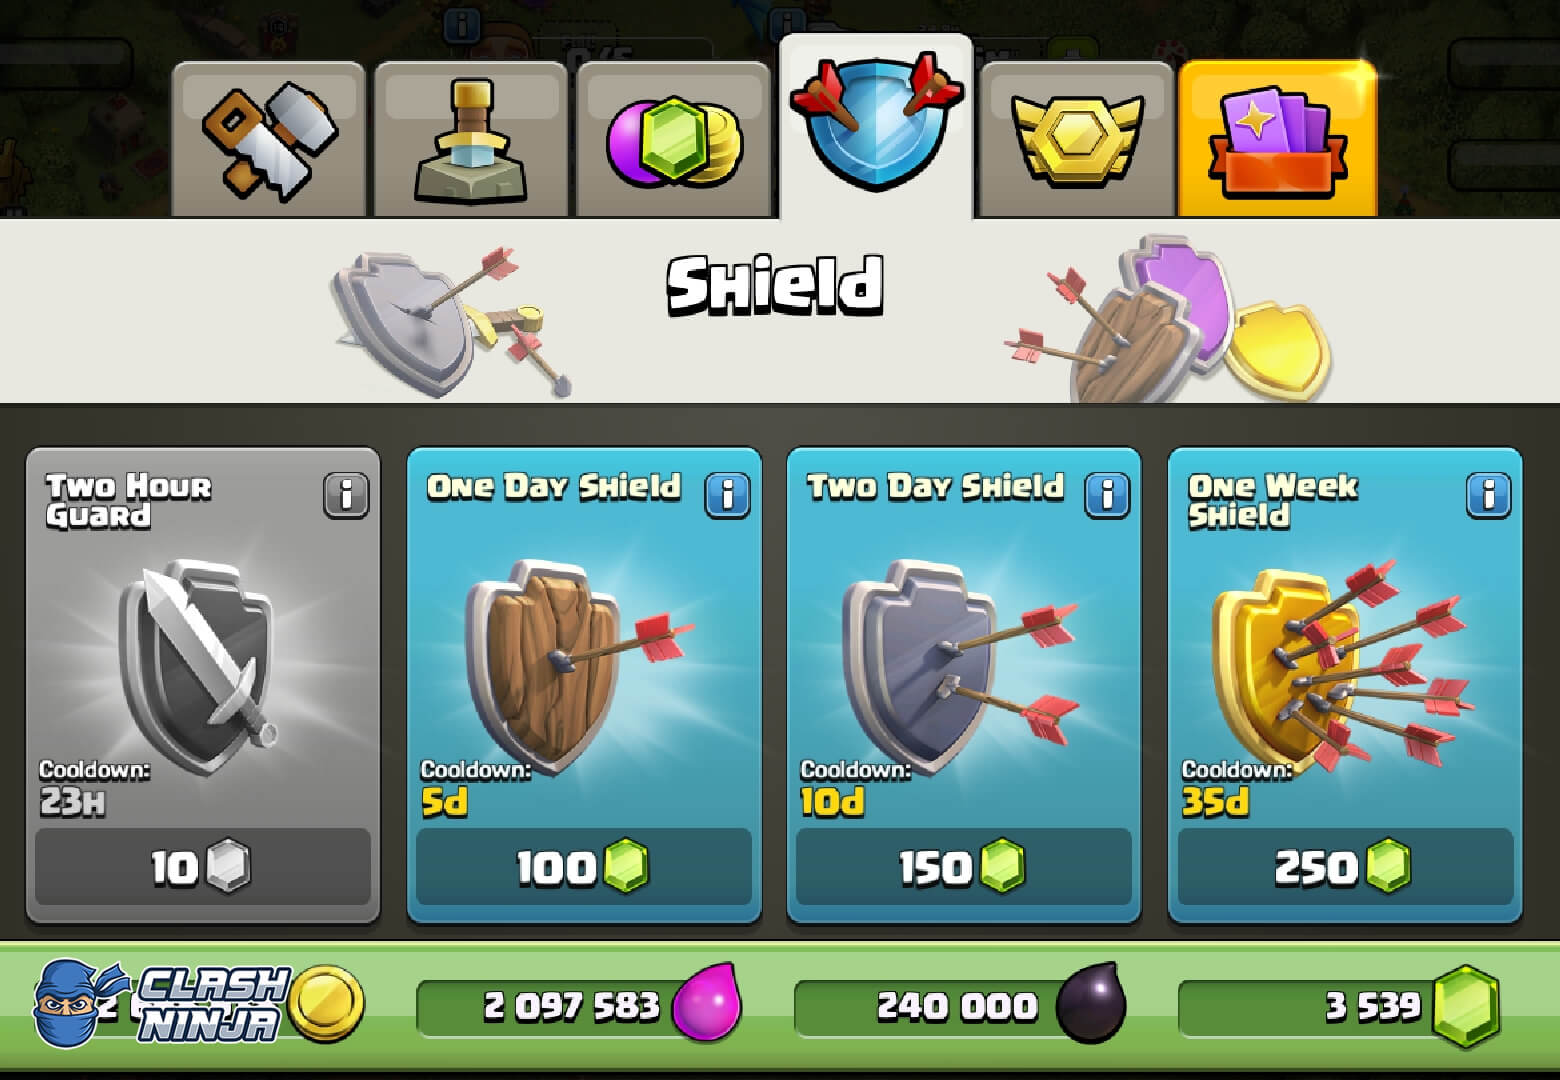 What are Shields and the Village Guard? - Clash Ninja